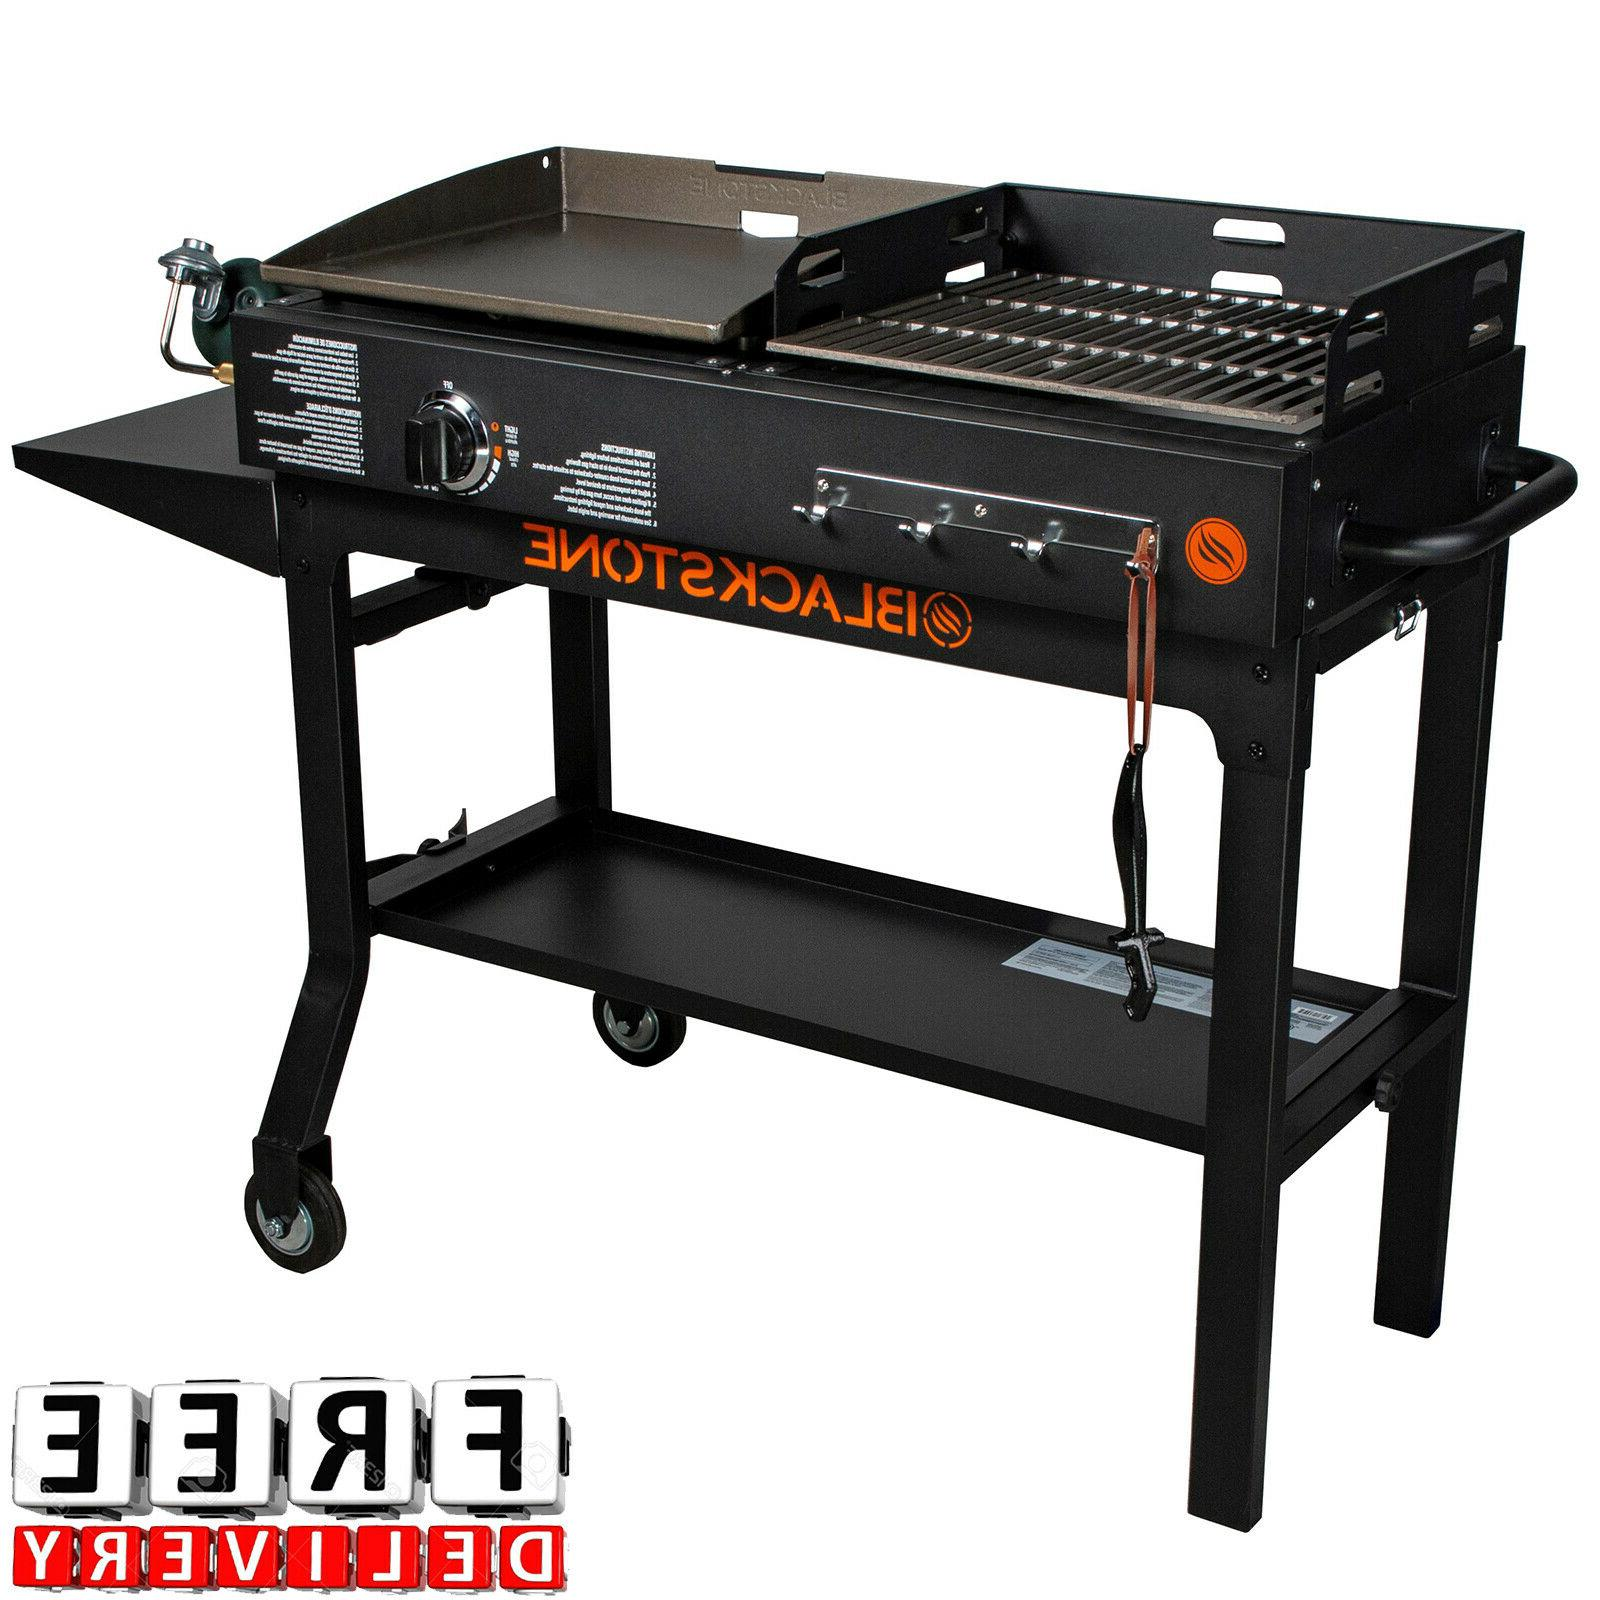 Outdoor Gas Grill Flat Top 2 Burner Portable Charcoal Griddl